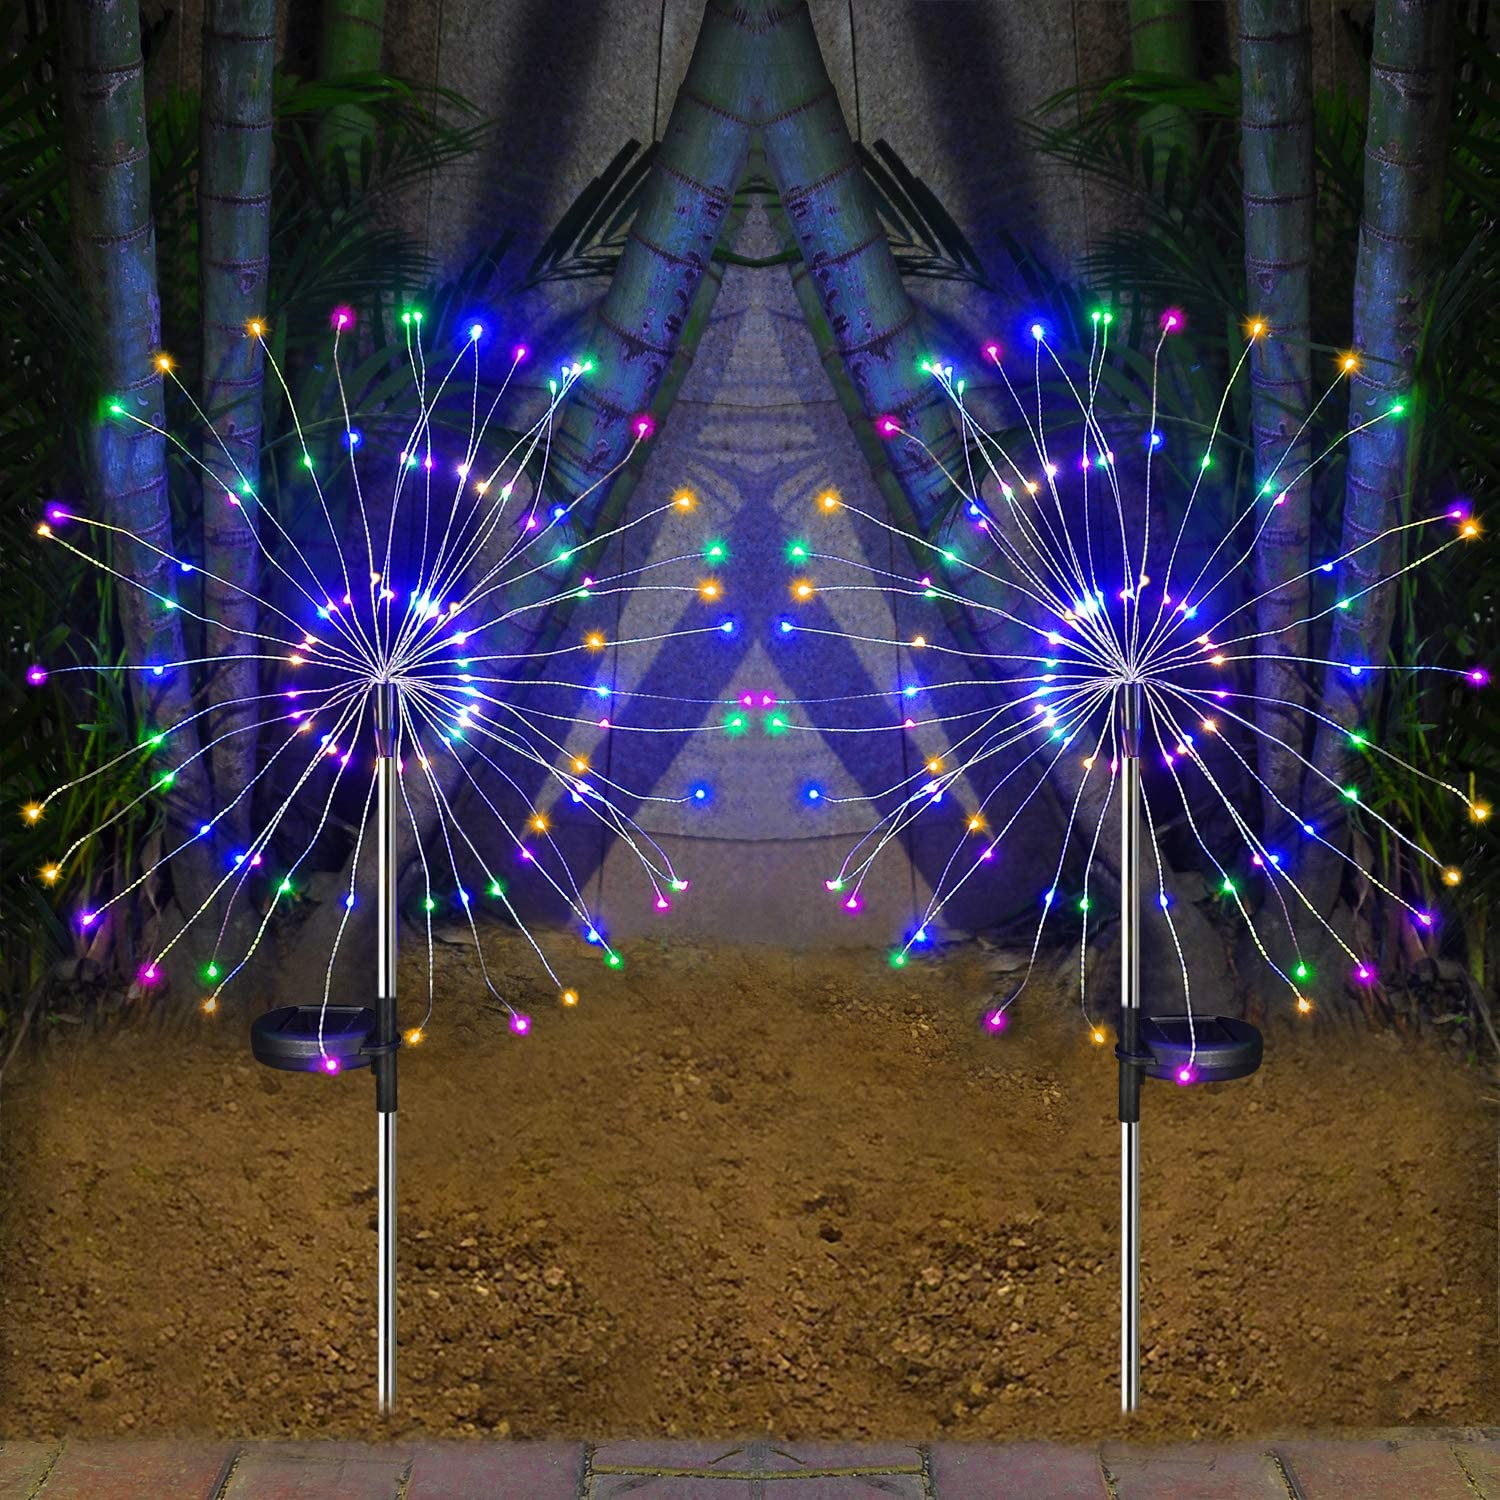 HeyMate Solar Lights Outdoor - 2 Pack Solar Garden Lights Outdoor Decorative with 105 LED Powered 35 Copper Wires Multi Color Solar Fireworks Lights for Walkway Patio Backyard Yard Lawn Christmas